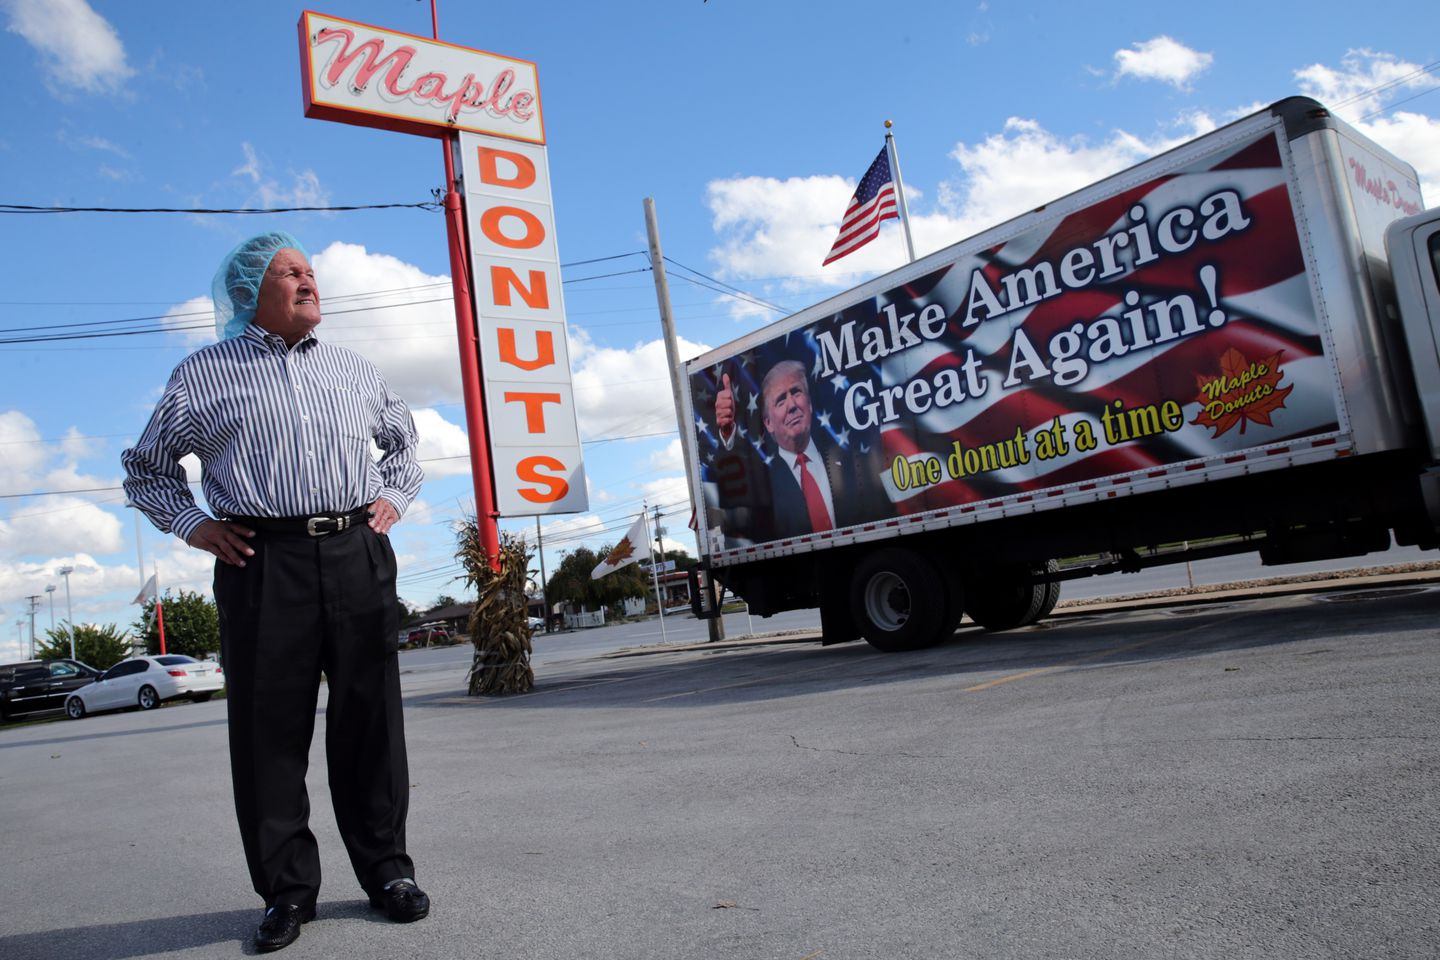 Charles Burnside, owner of Maple Donuts in York, was proud to show off his support for Donald Trump with a sign on one of his trucks.